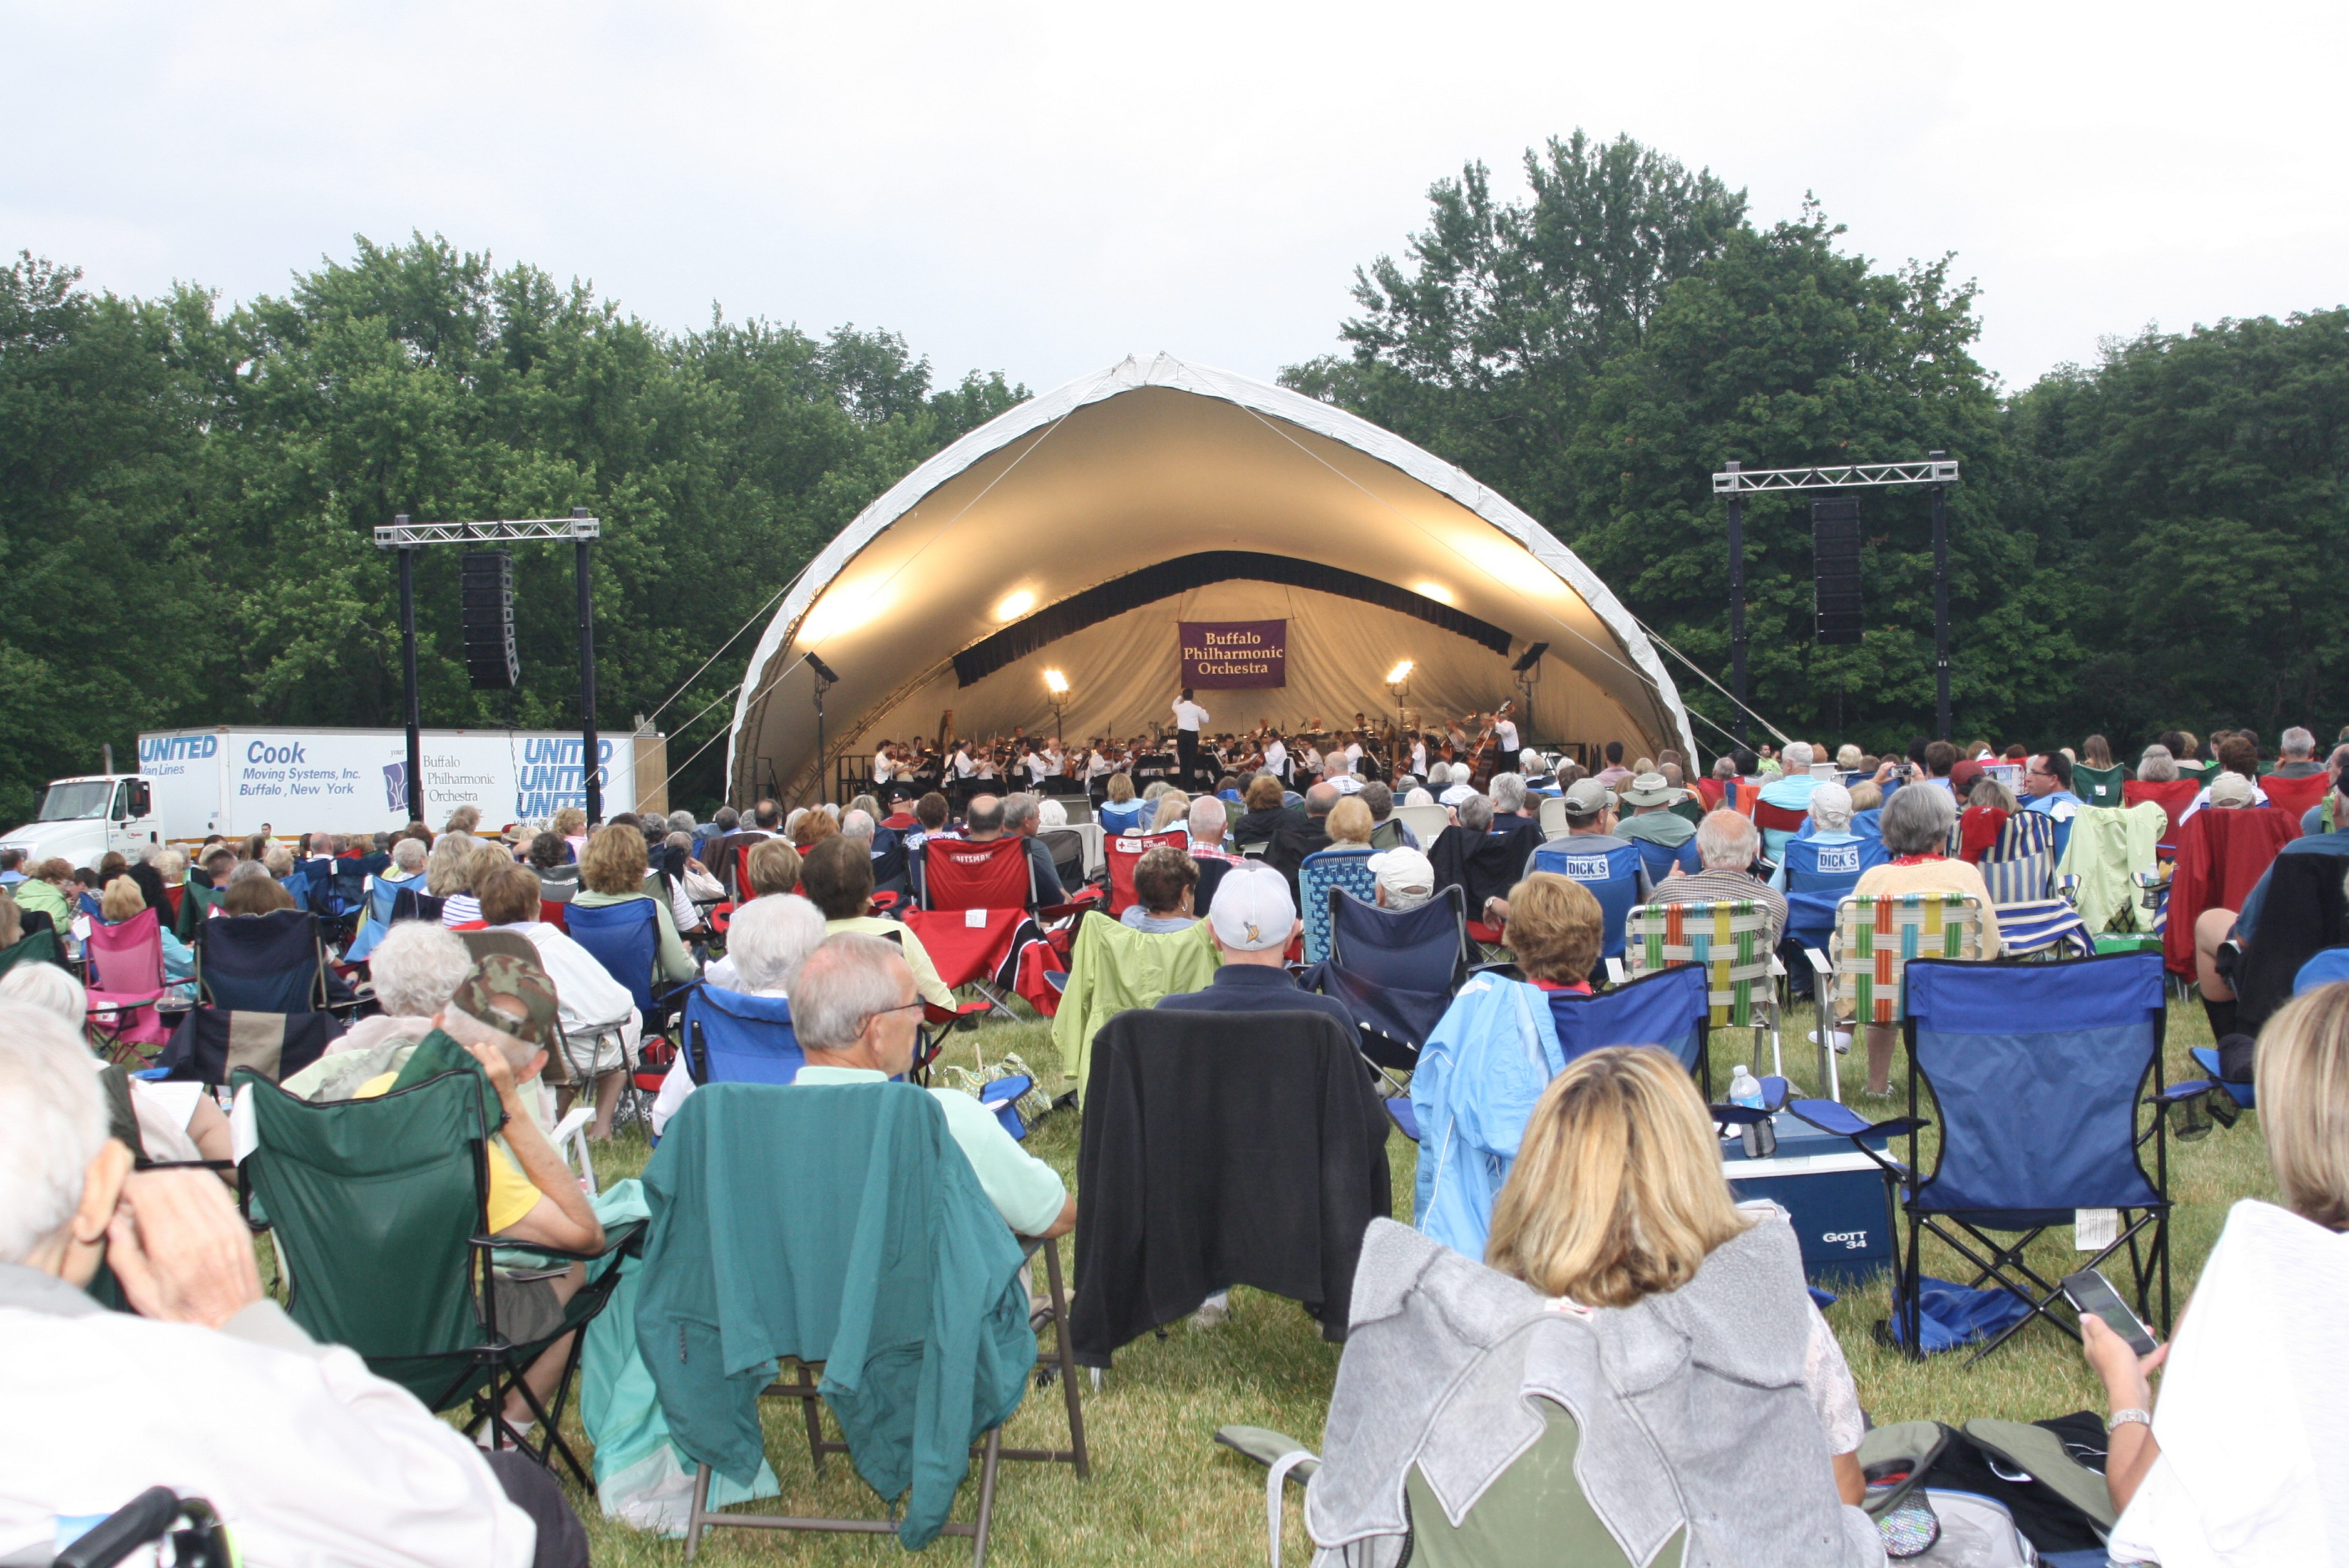 The Buffalo Philharmonic Orchestra will give a free concert of Americana music at 7 p.m. Friday at Knox Farm State Park. (courtesy Susan Schwartz)